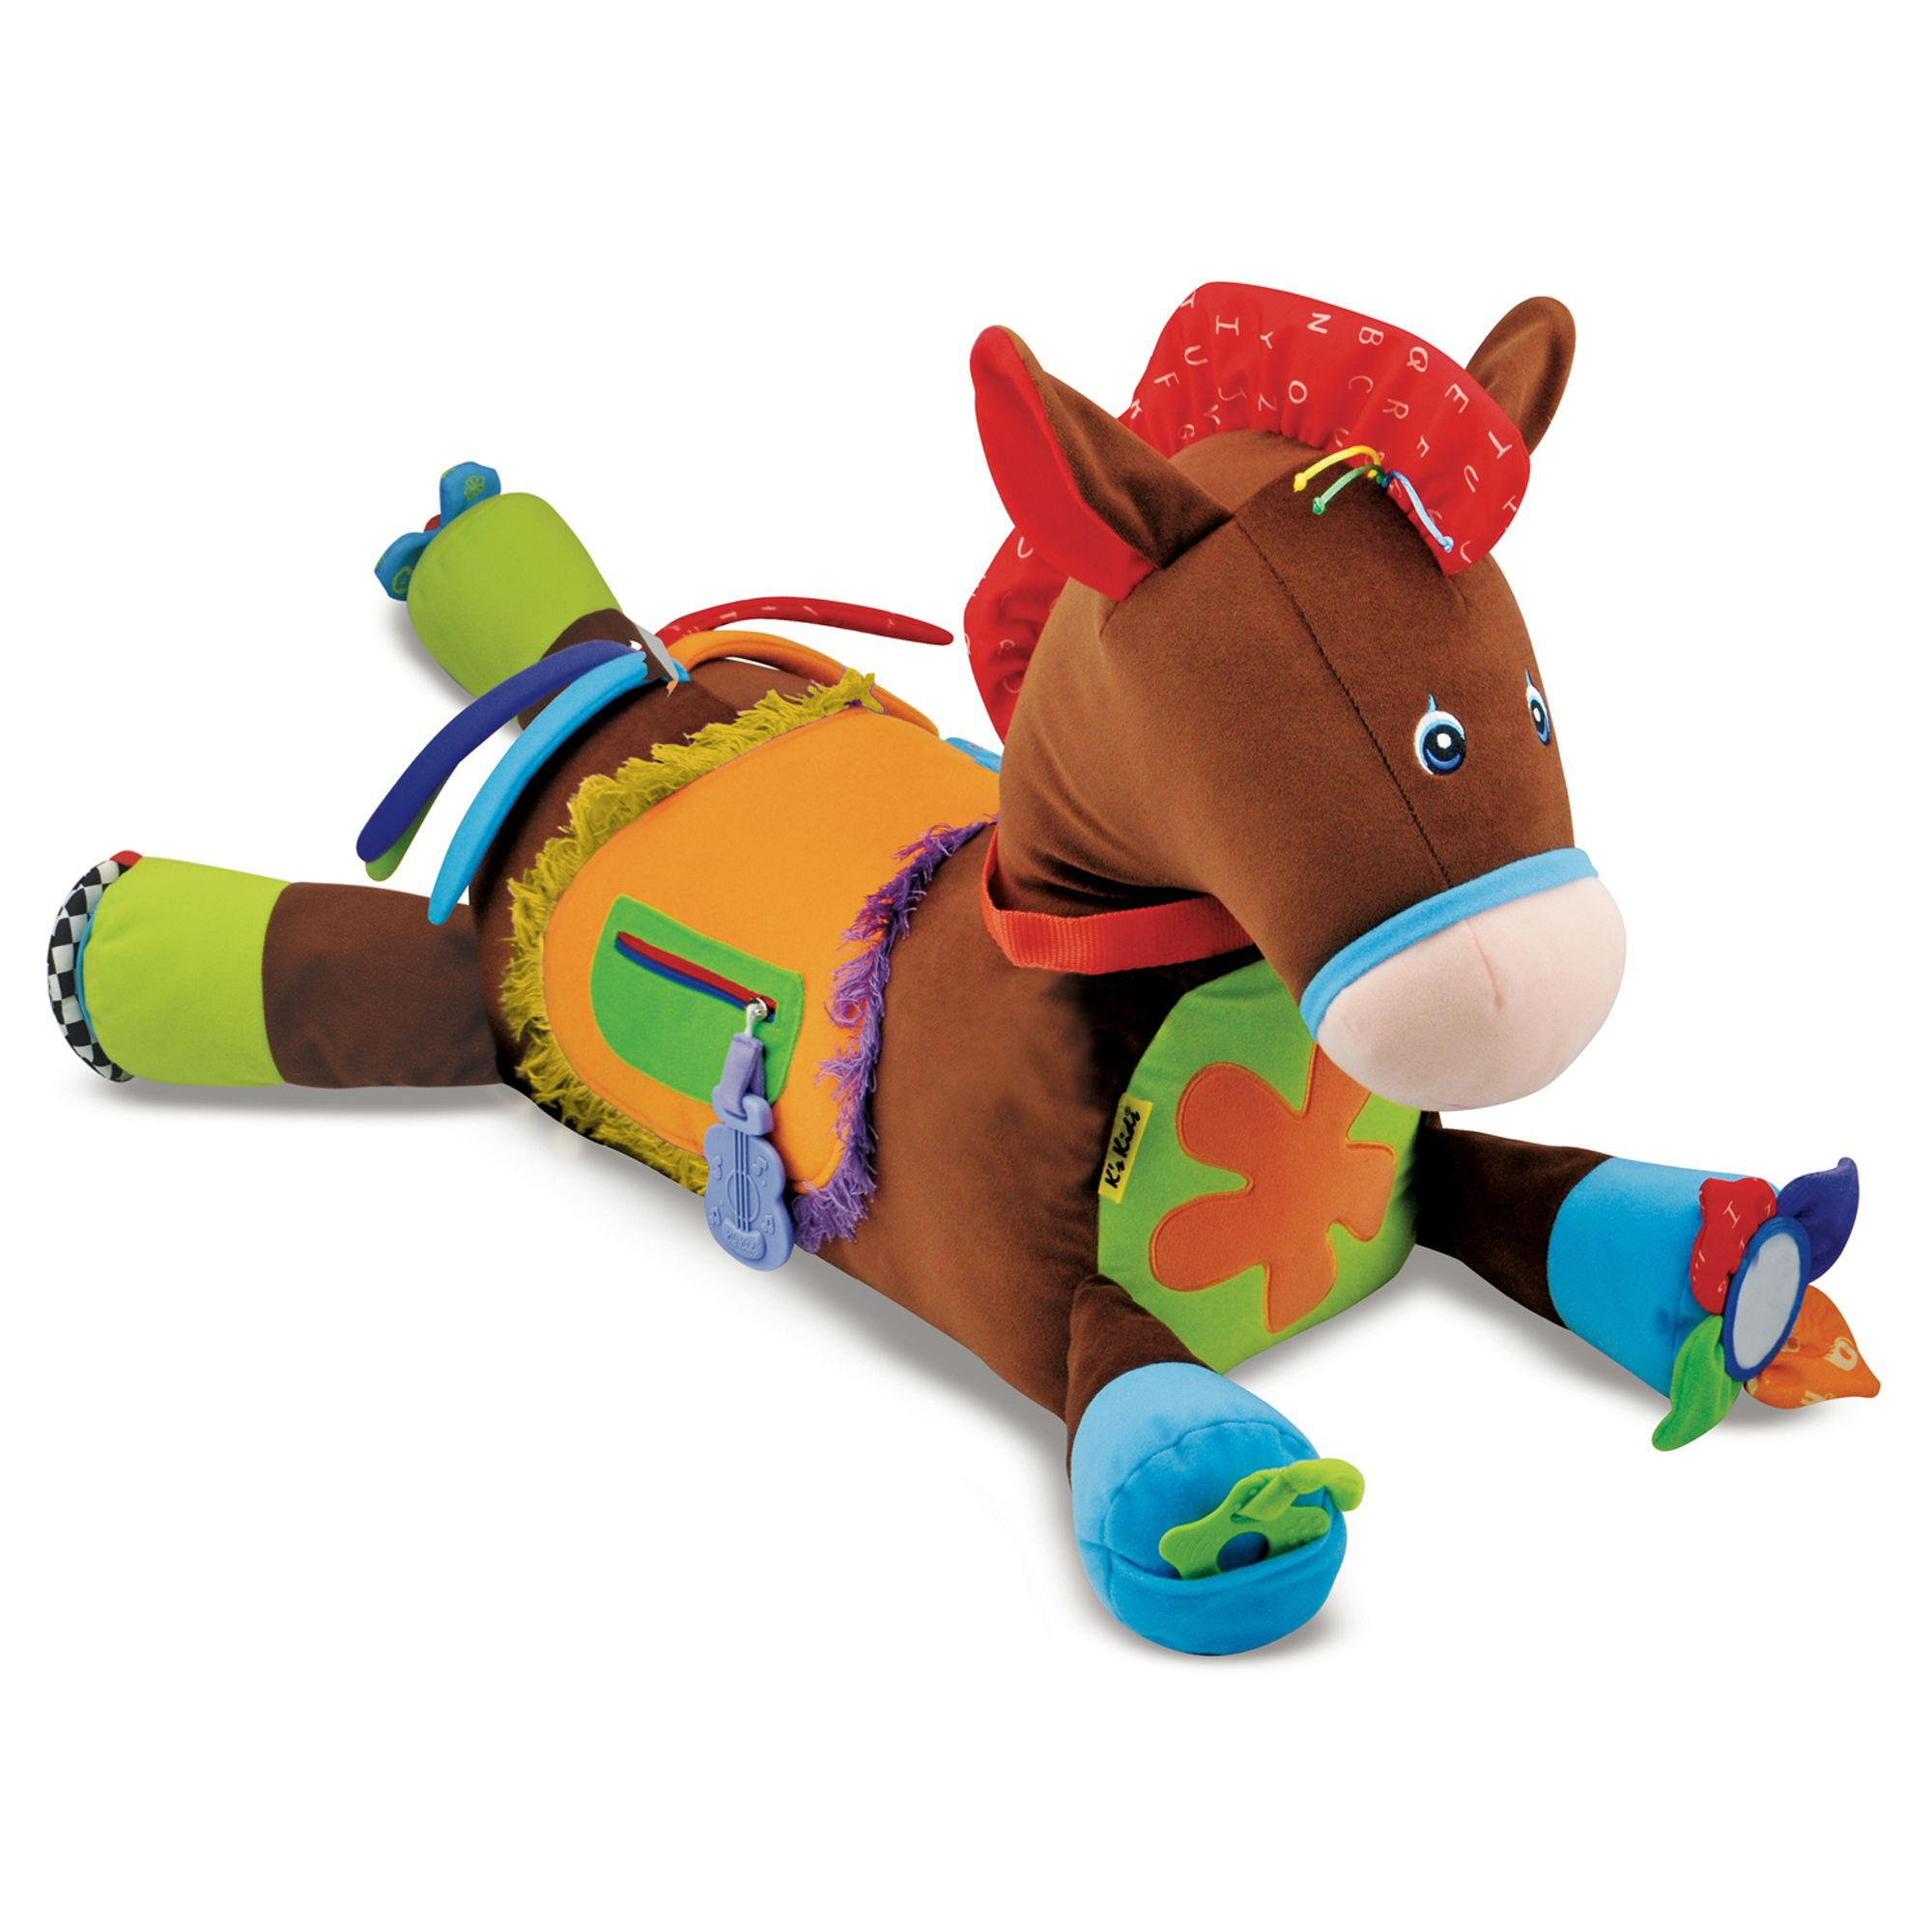 Toys by melissa and doug